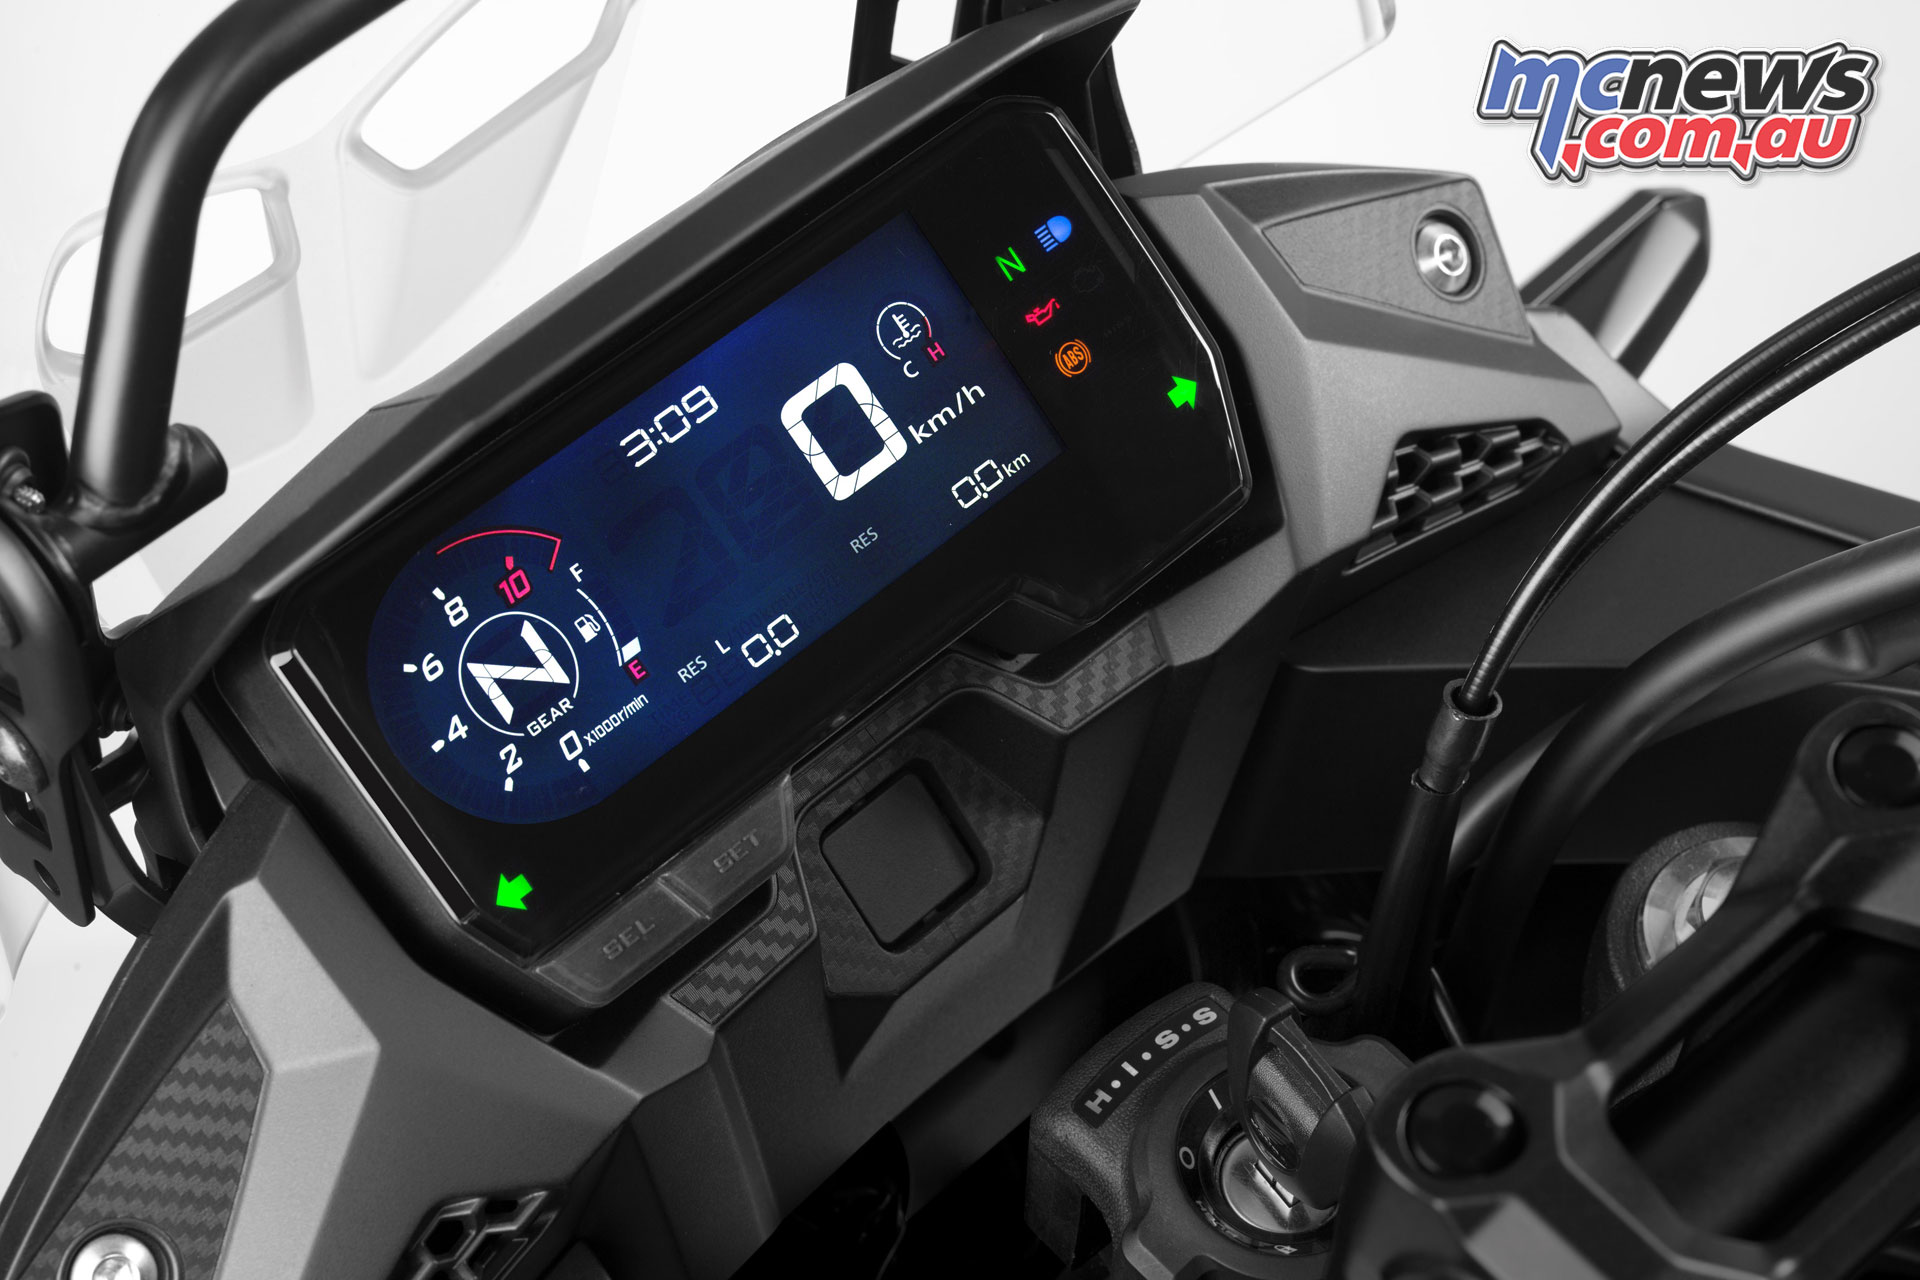 A new LCD unit is also found on the CB500X in 2019